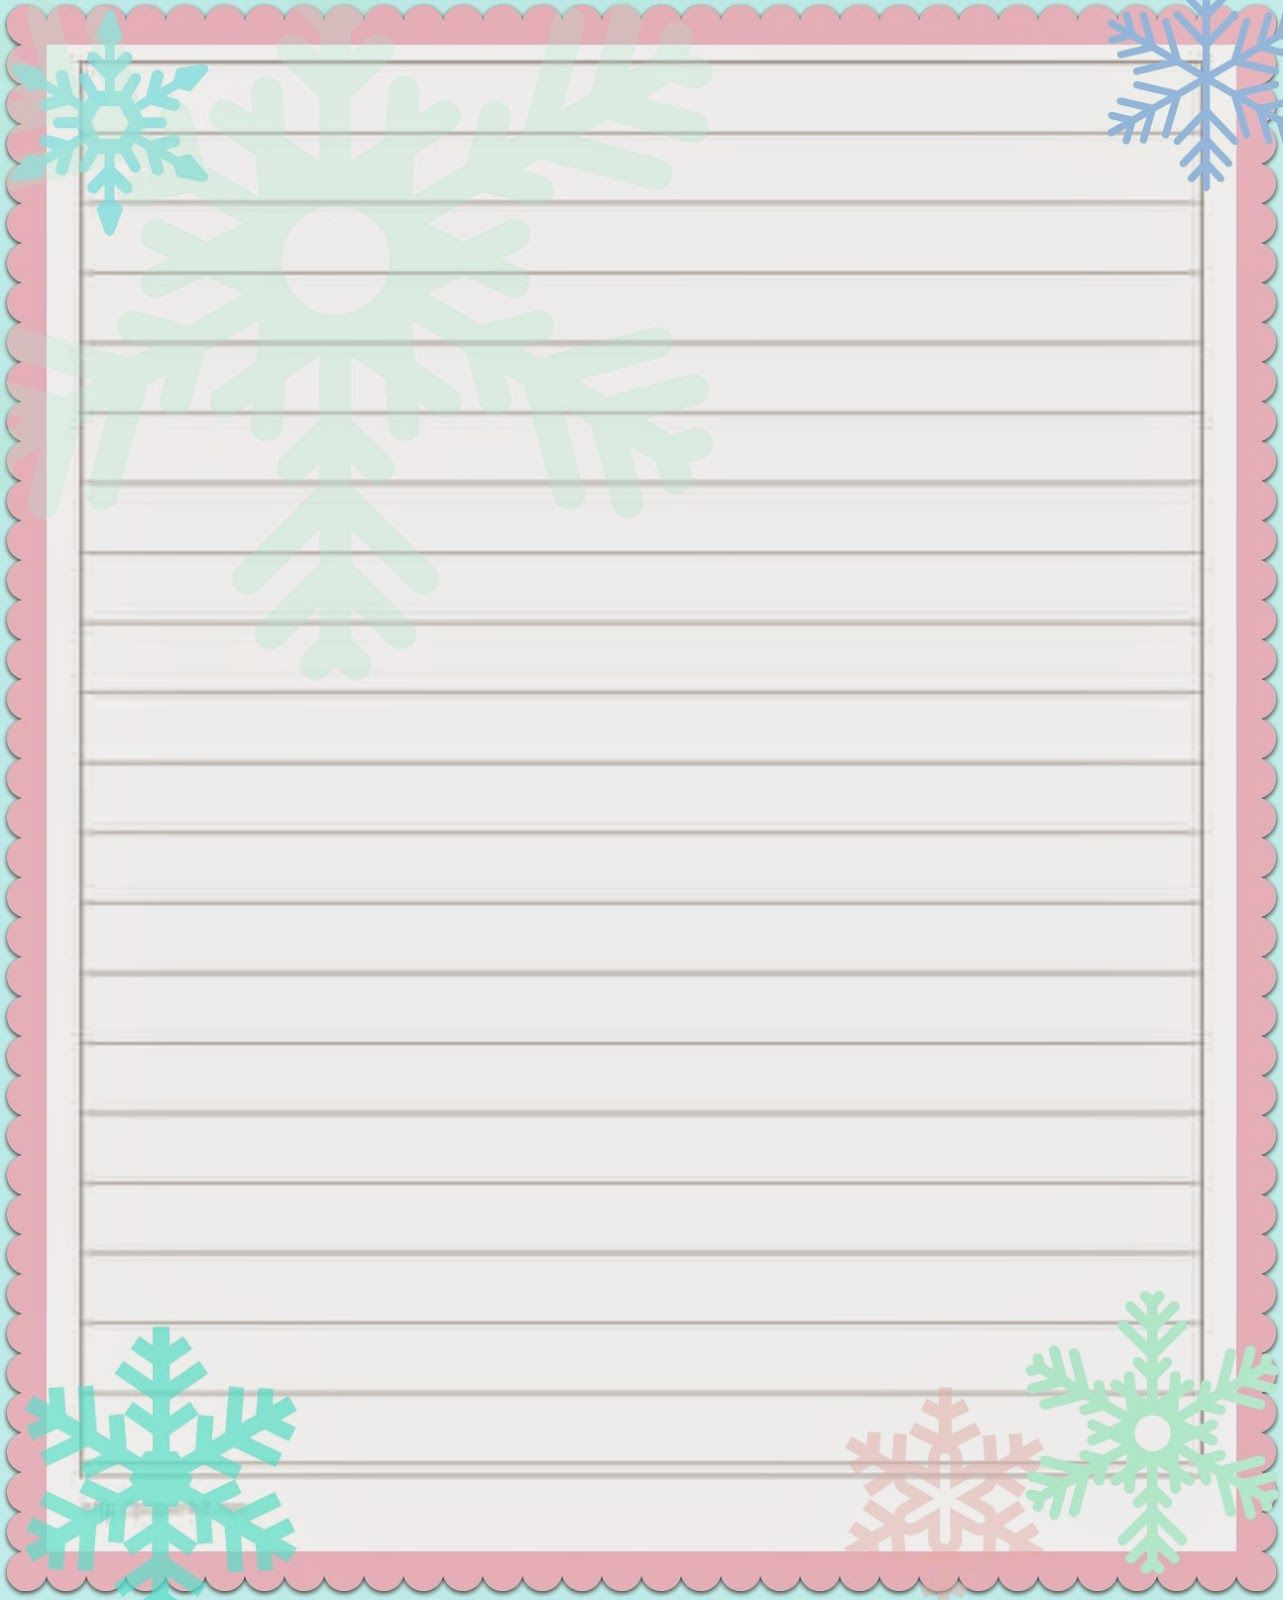 image relating to Cute Printable Notebook Paper named Pin via Linda Dugan upon Coated stationery Printable included